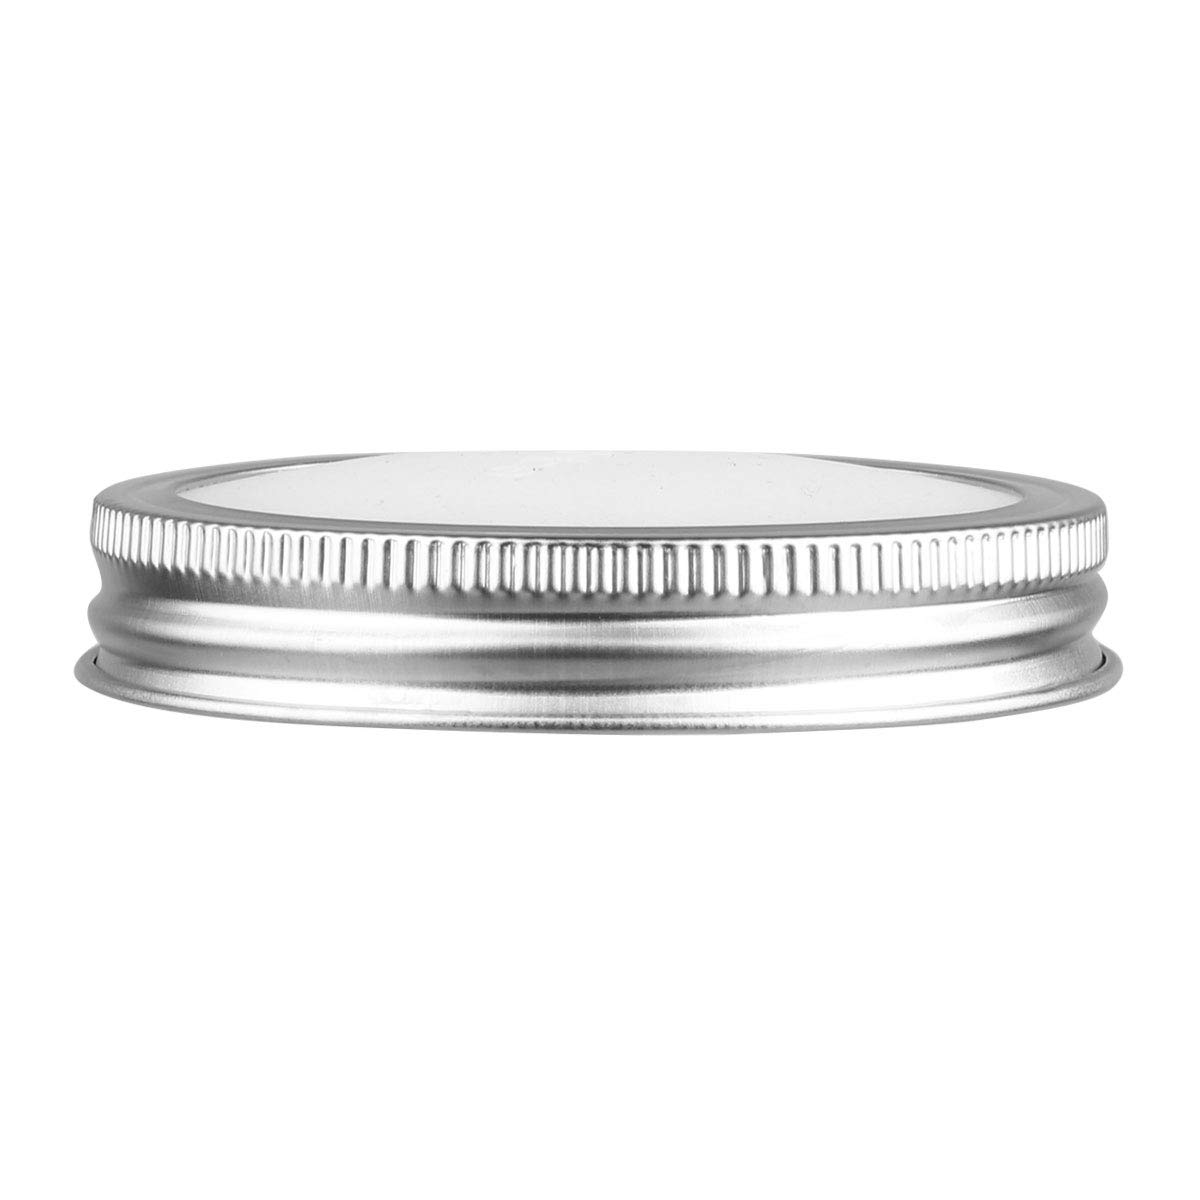 CHICTRY Stainless Steel Mason Jar Lids Rust Resistant Polished Storage Solid Caps with Silicone Sealing Lid Inserts Suitable for Mason Ball Canning Jar Silver 86mm by CHICTRY (Image #1)